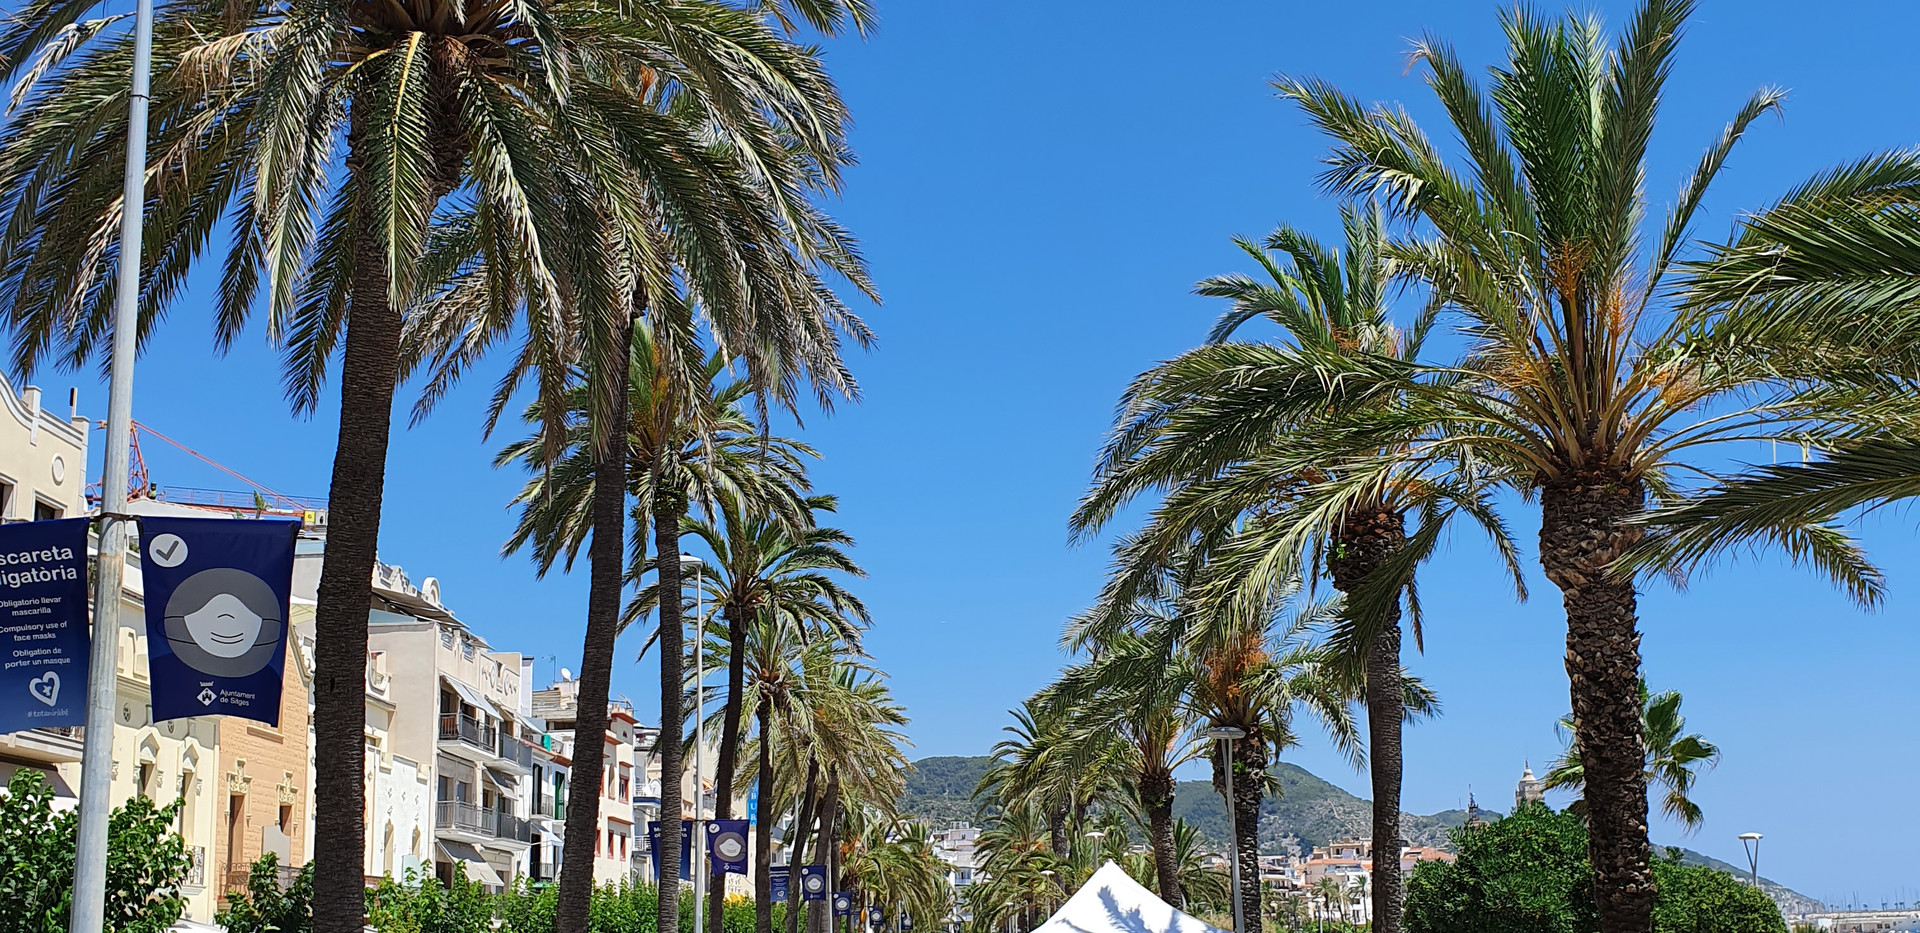 The Lovely Palms of Sitges